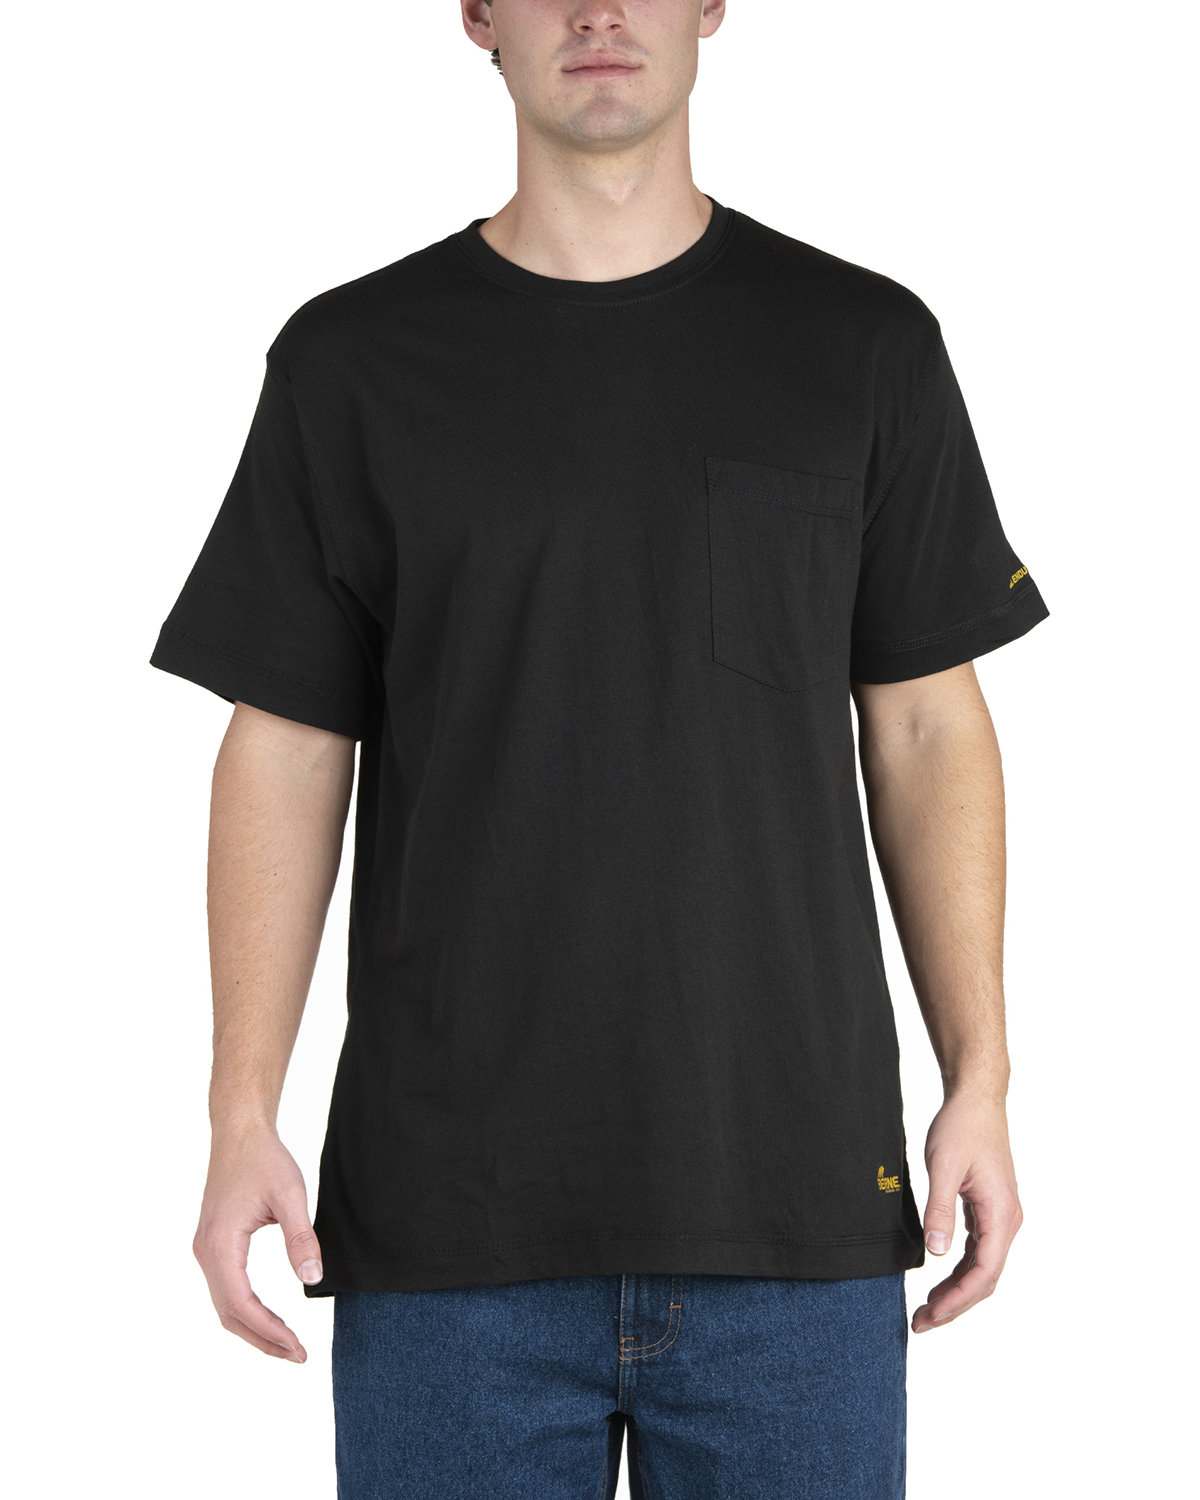 Berne Men's Lightweight Performance Pocket T-Shirt BLACK